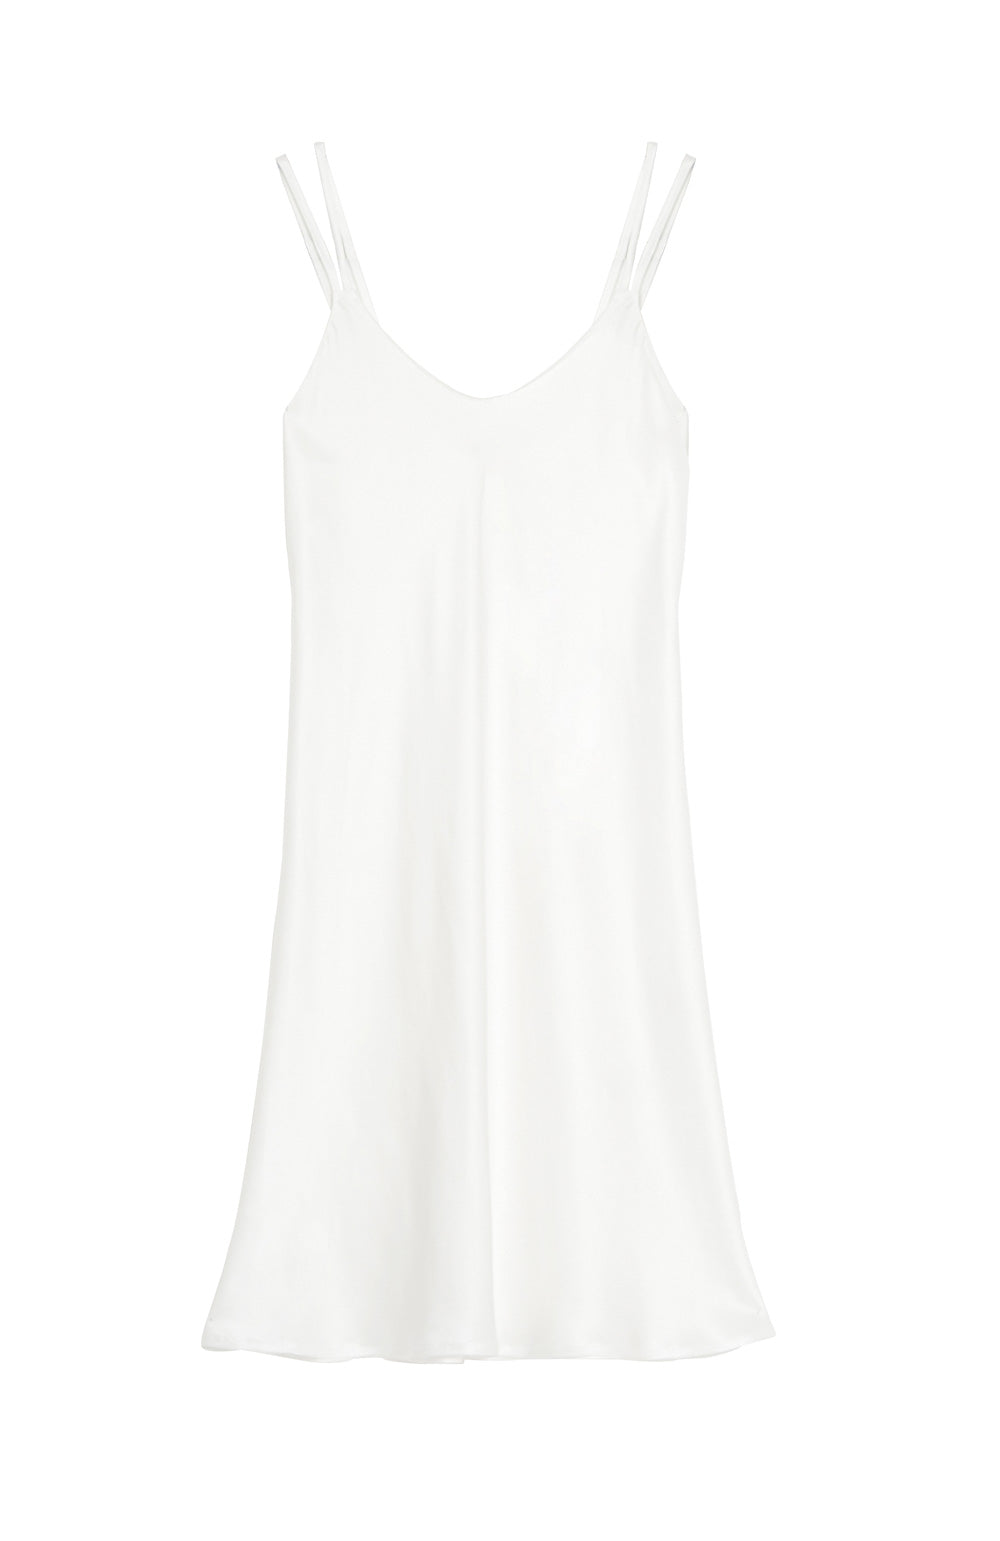 Women's Luxury Ivory Silk Short Nightdress | Bonsoir of London